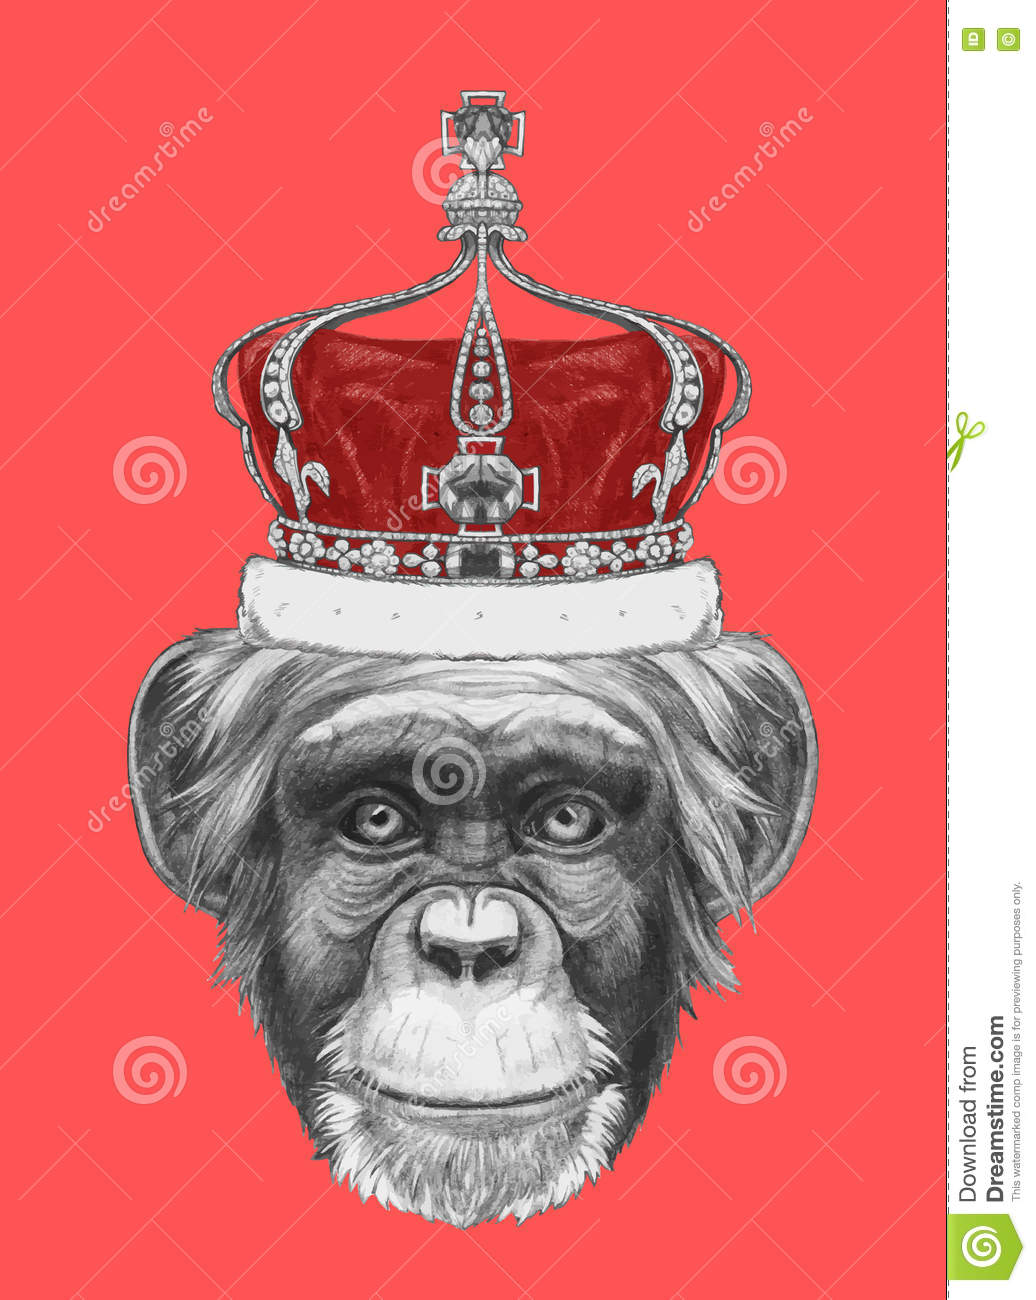 Download Hand Drawn Portrait Of Monkey With Crown Stock Vector